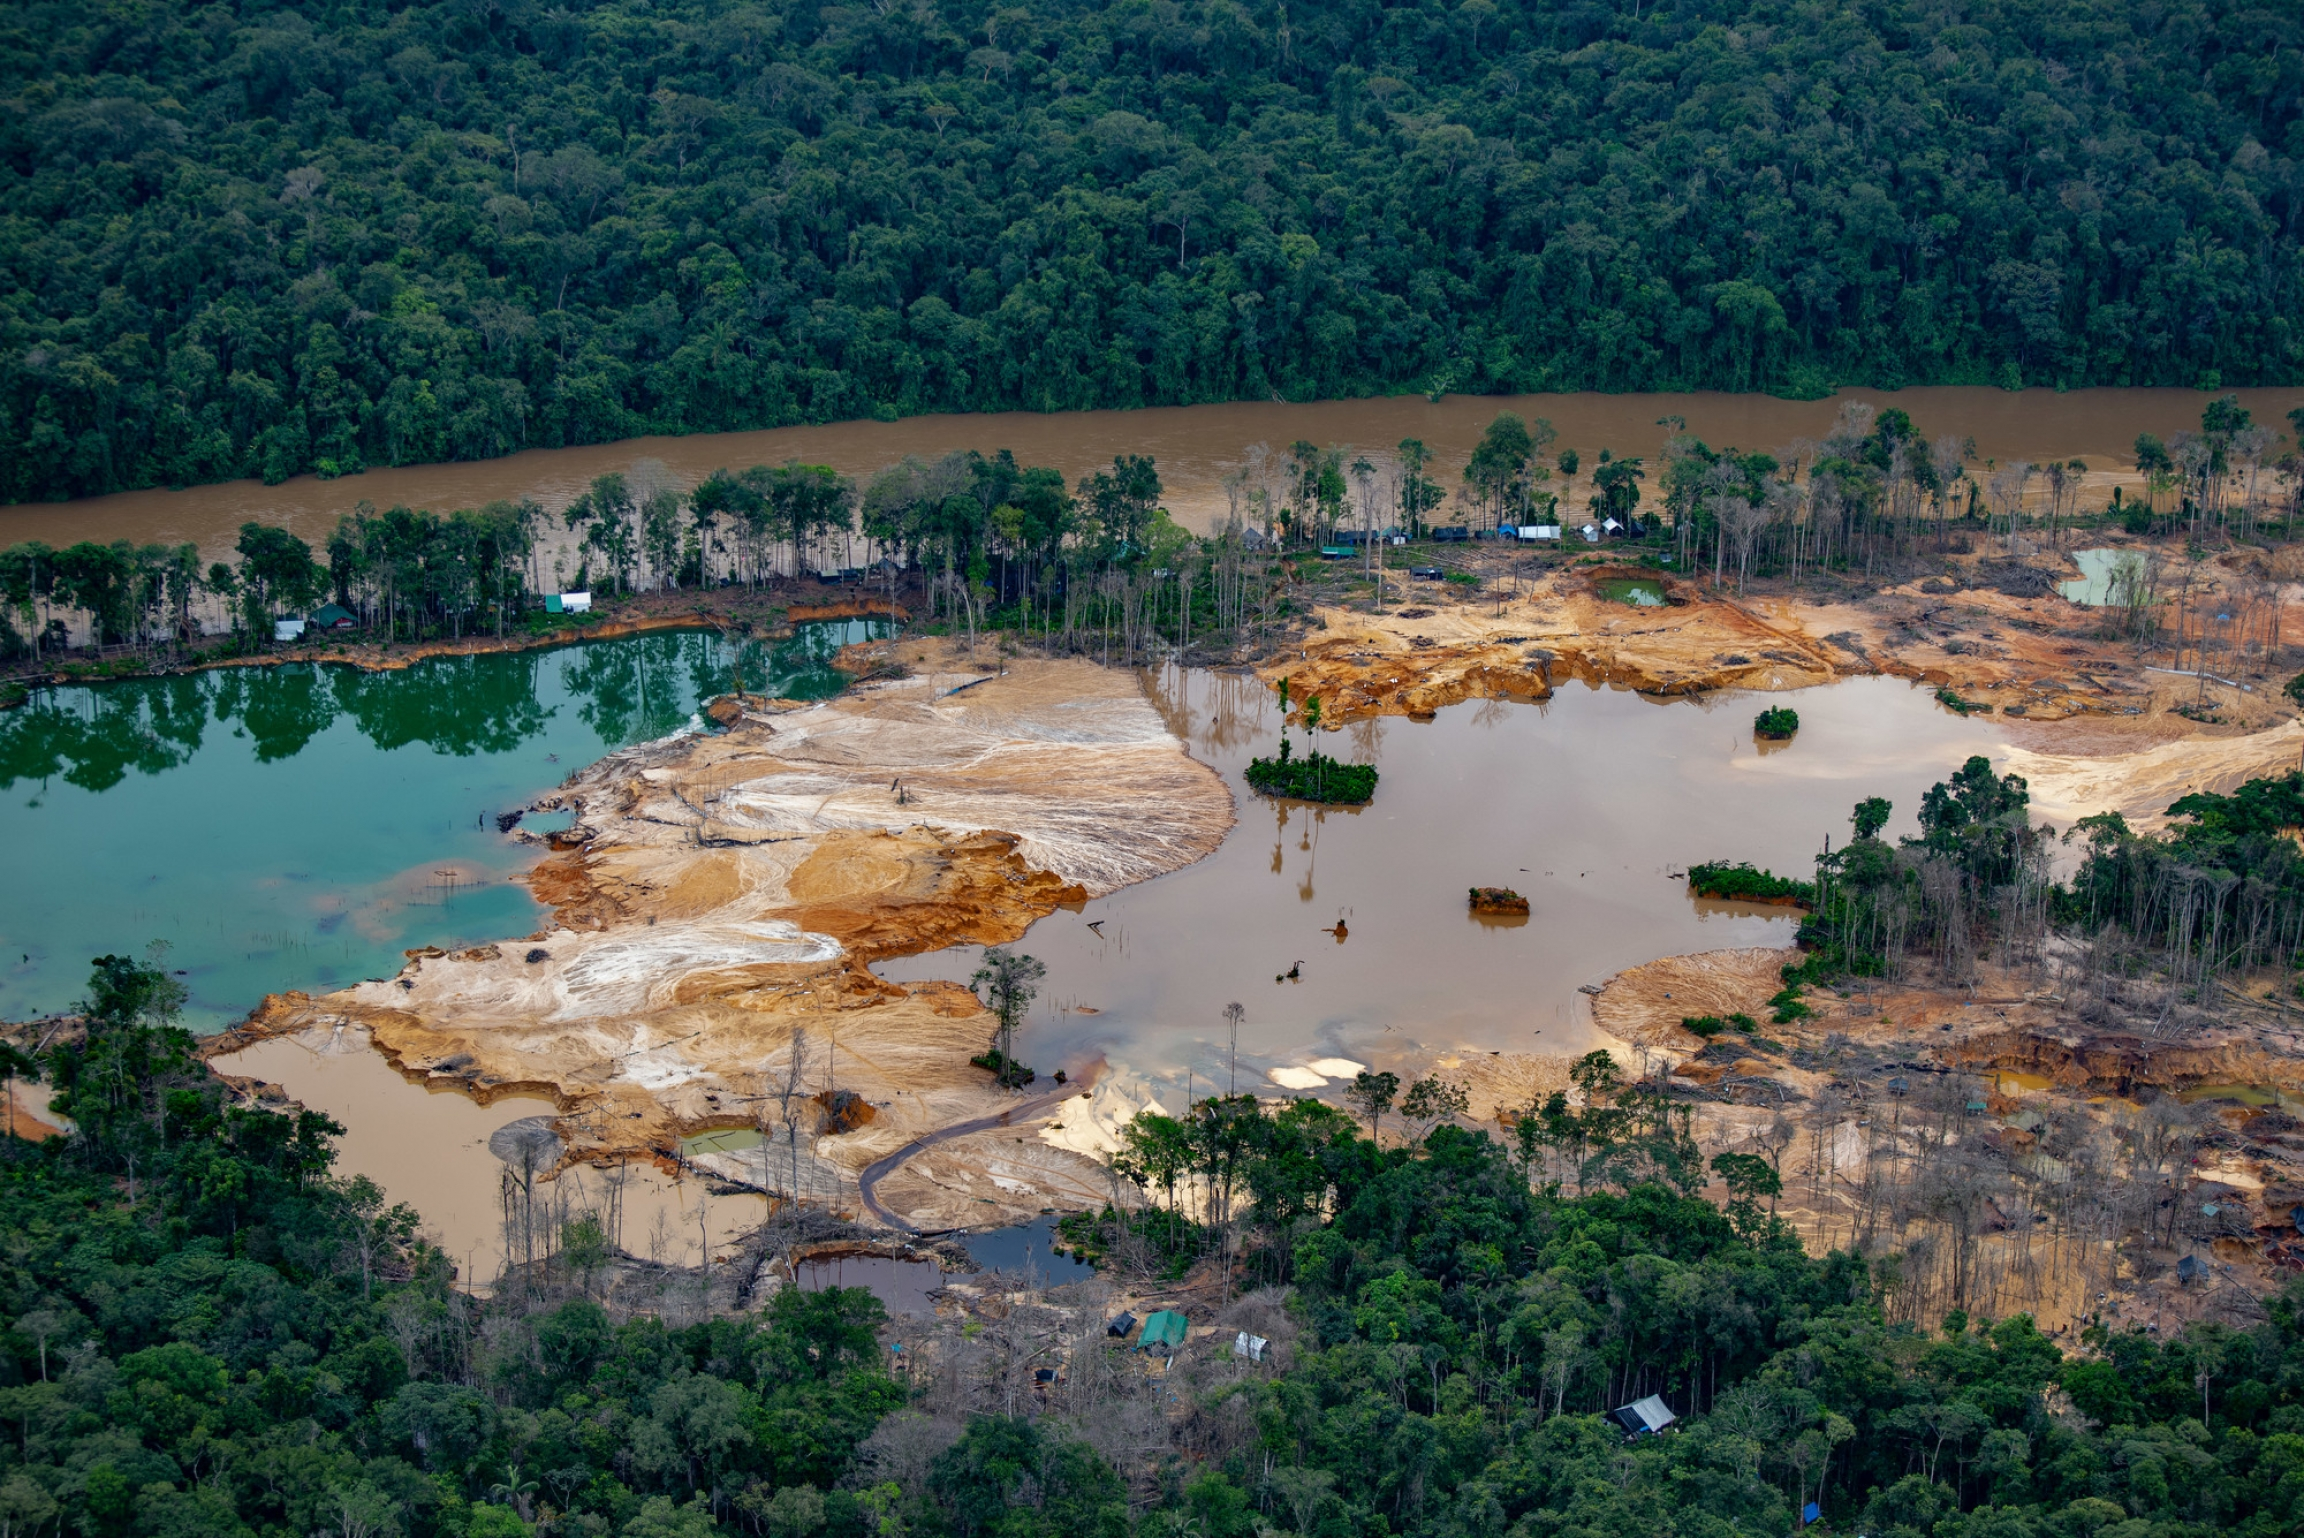 Environmental devastation caused by illegal mining operations in Yanomami land.